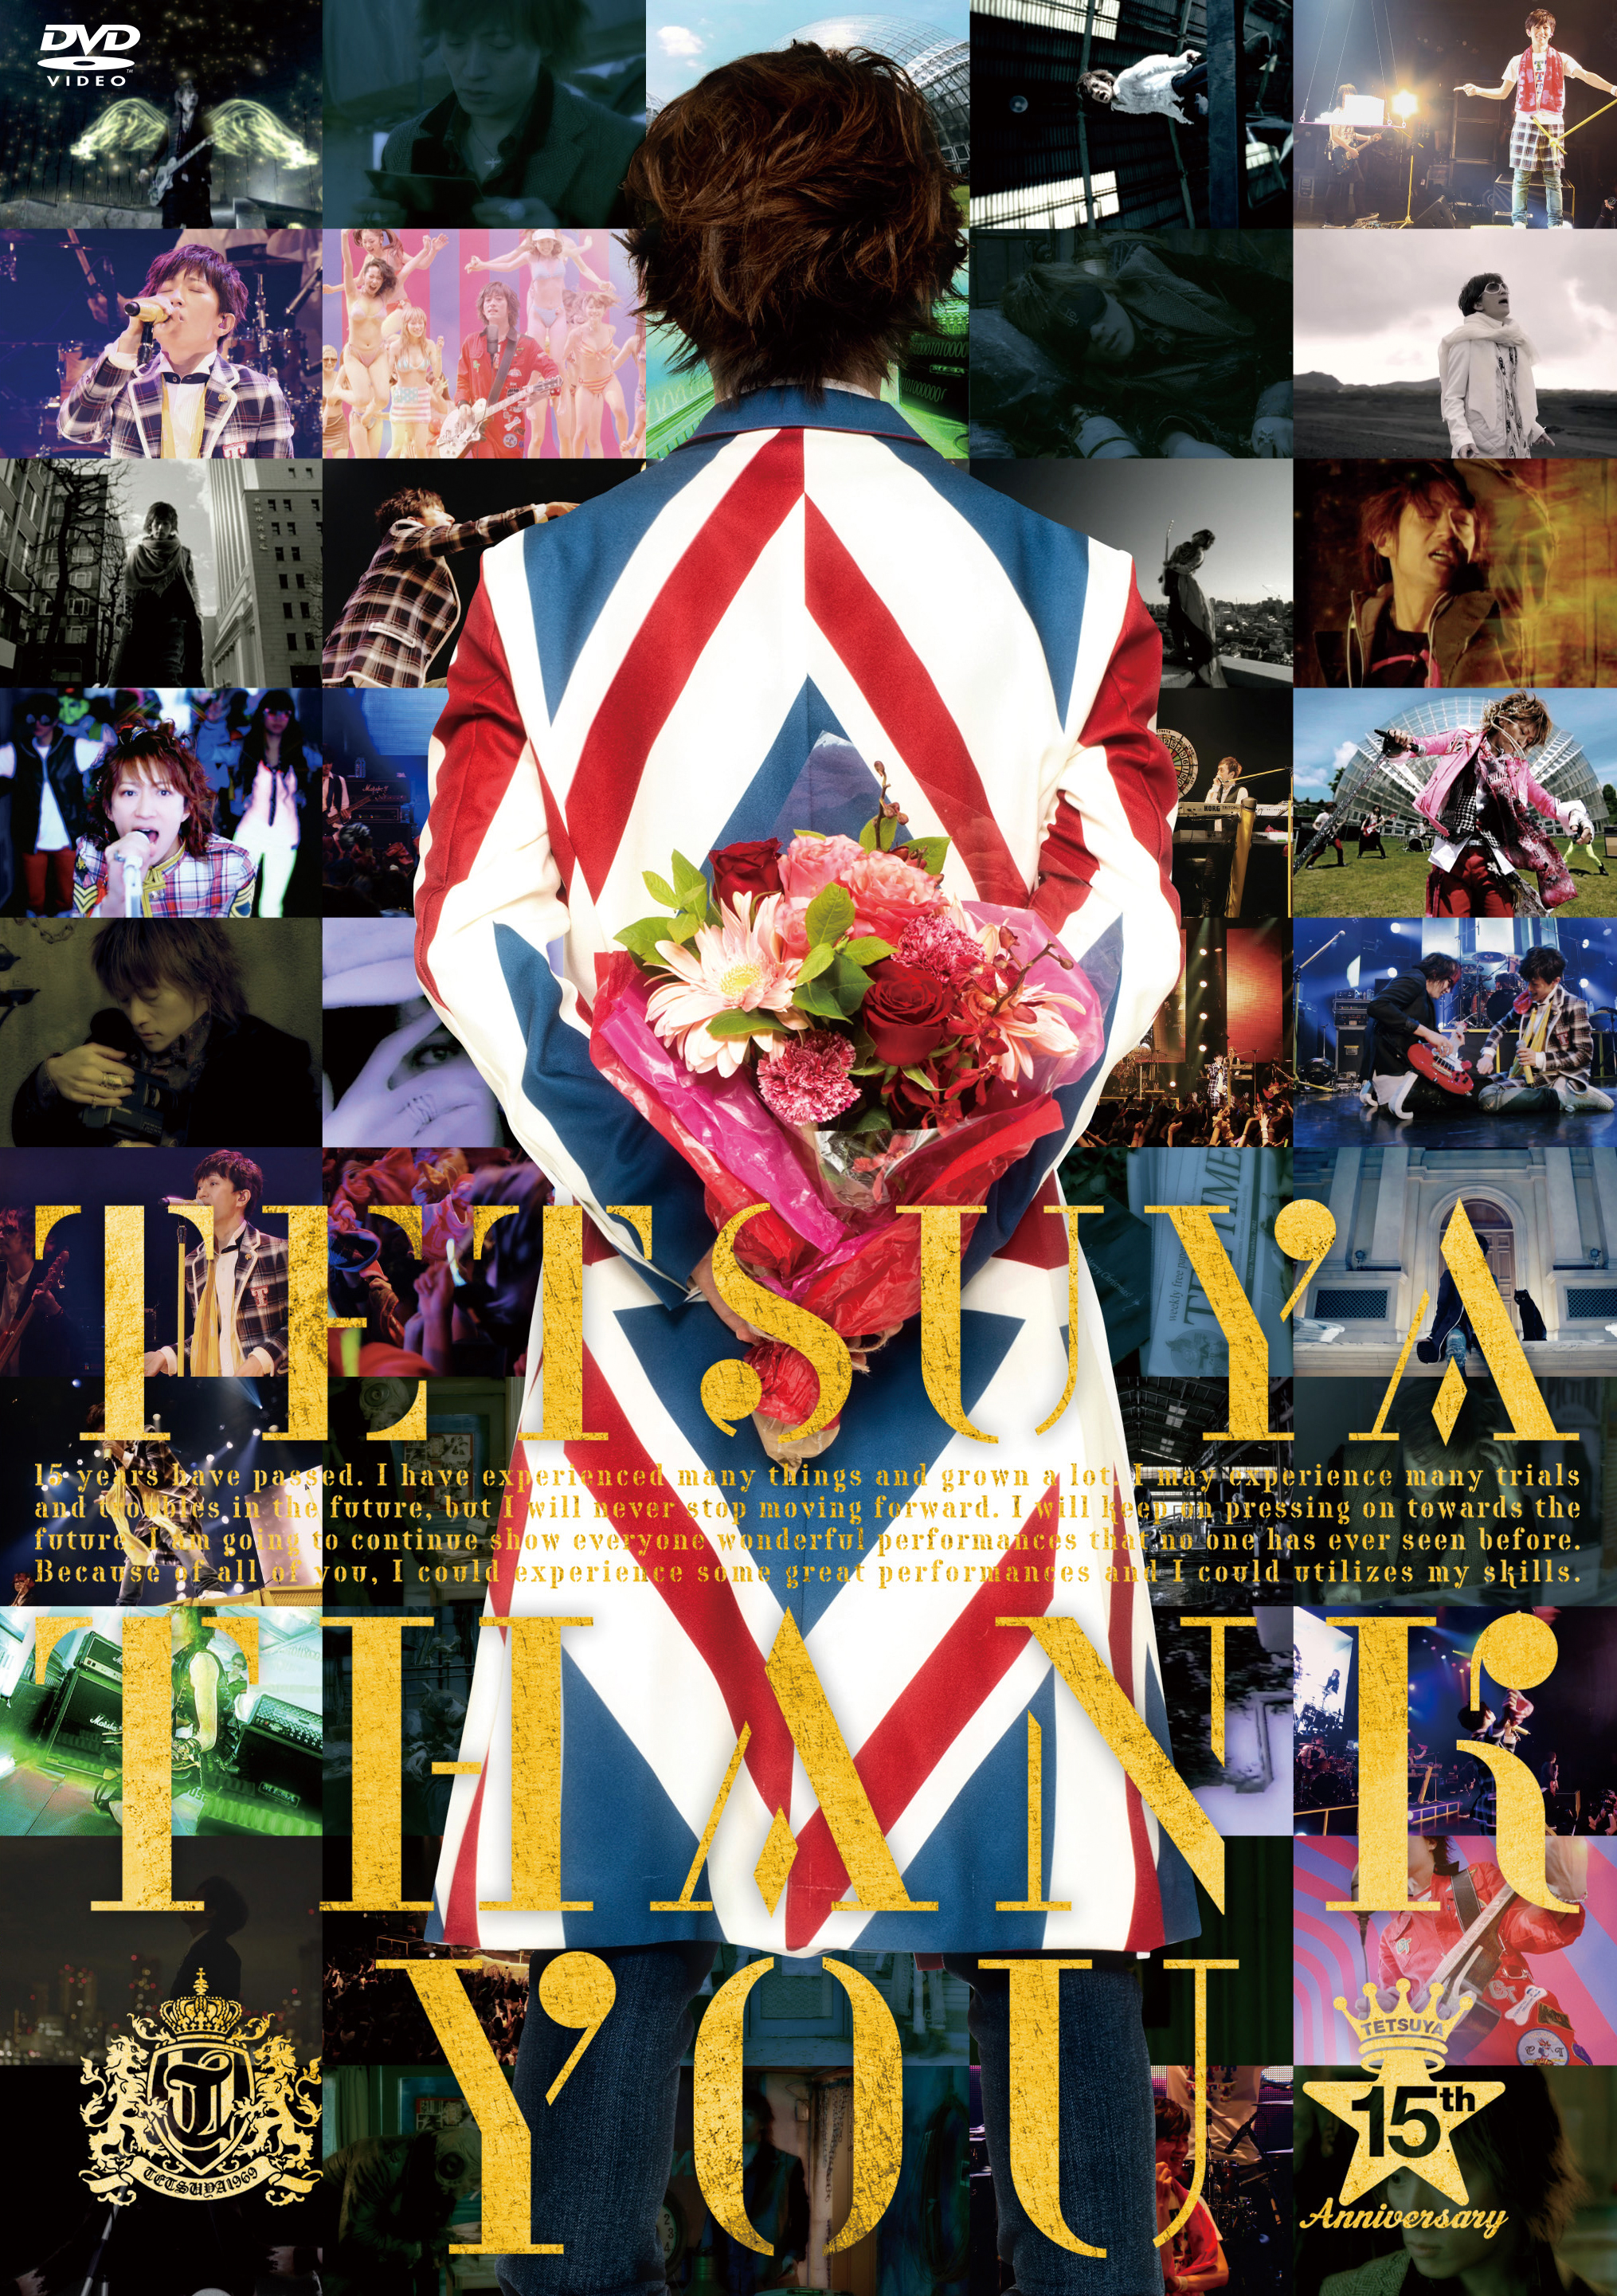 【DVD】THANK YOU+WIZY限定 撮り下ろしPhotoBook 「THANK YOU」(集合写真撮影会:8/25公演)の画像